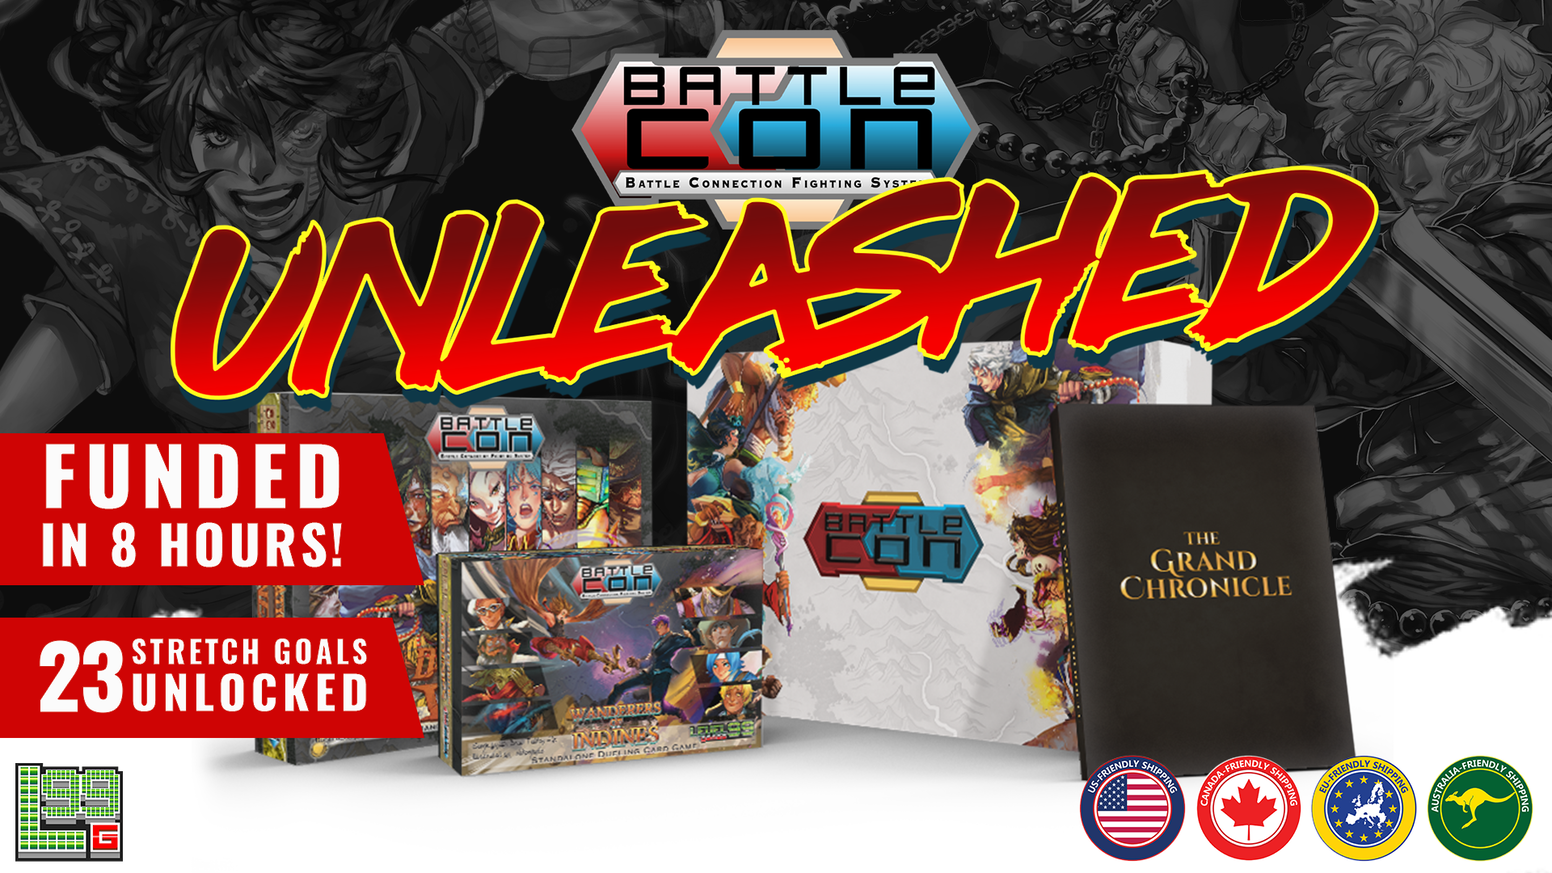 You asked, we listened. This is the gigantic BattleCON Collector's Box you've been waiting for! Also, we rebalanced Arec.